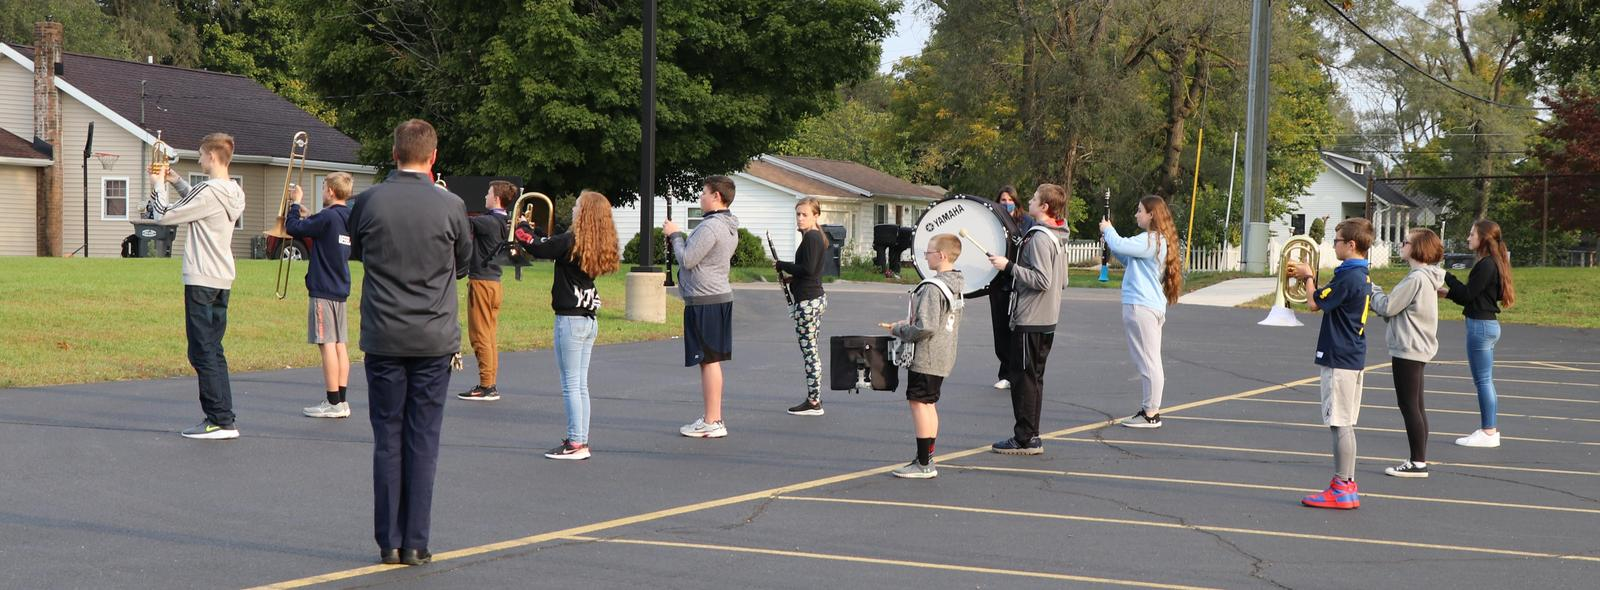 marching band practice outside